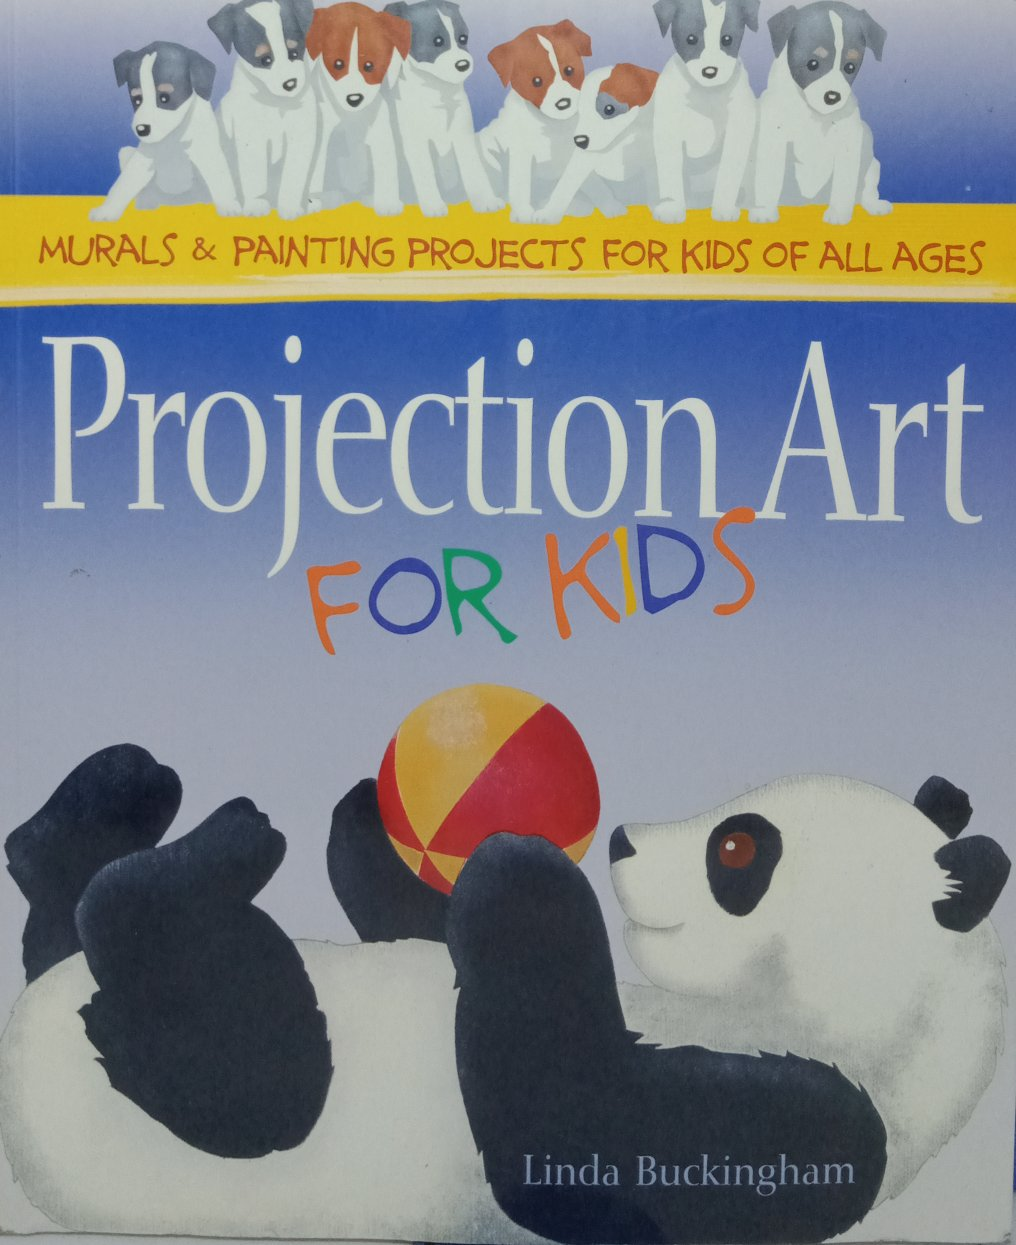 Projection art for kids by Linda Buckingham